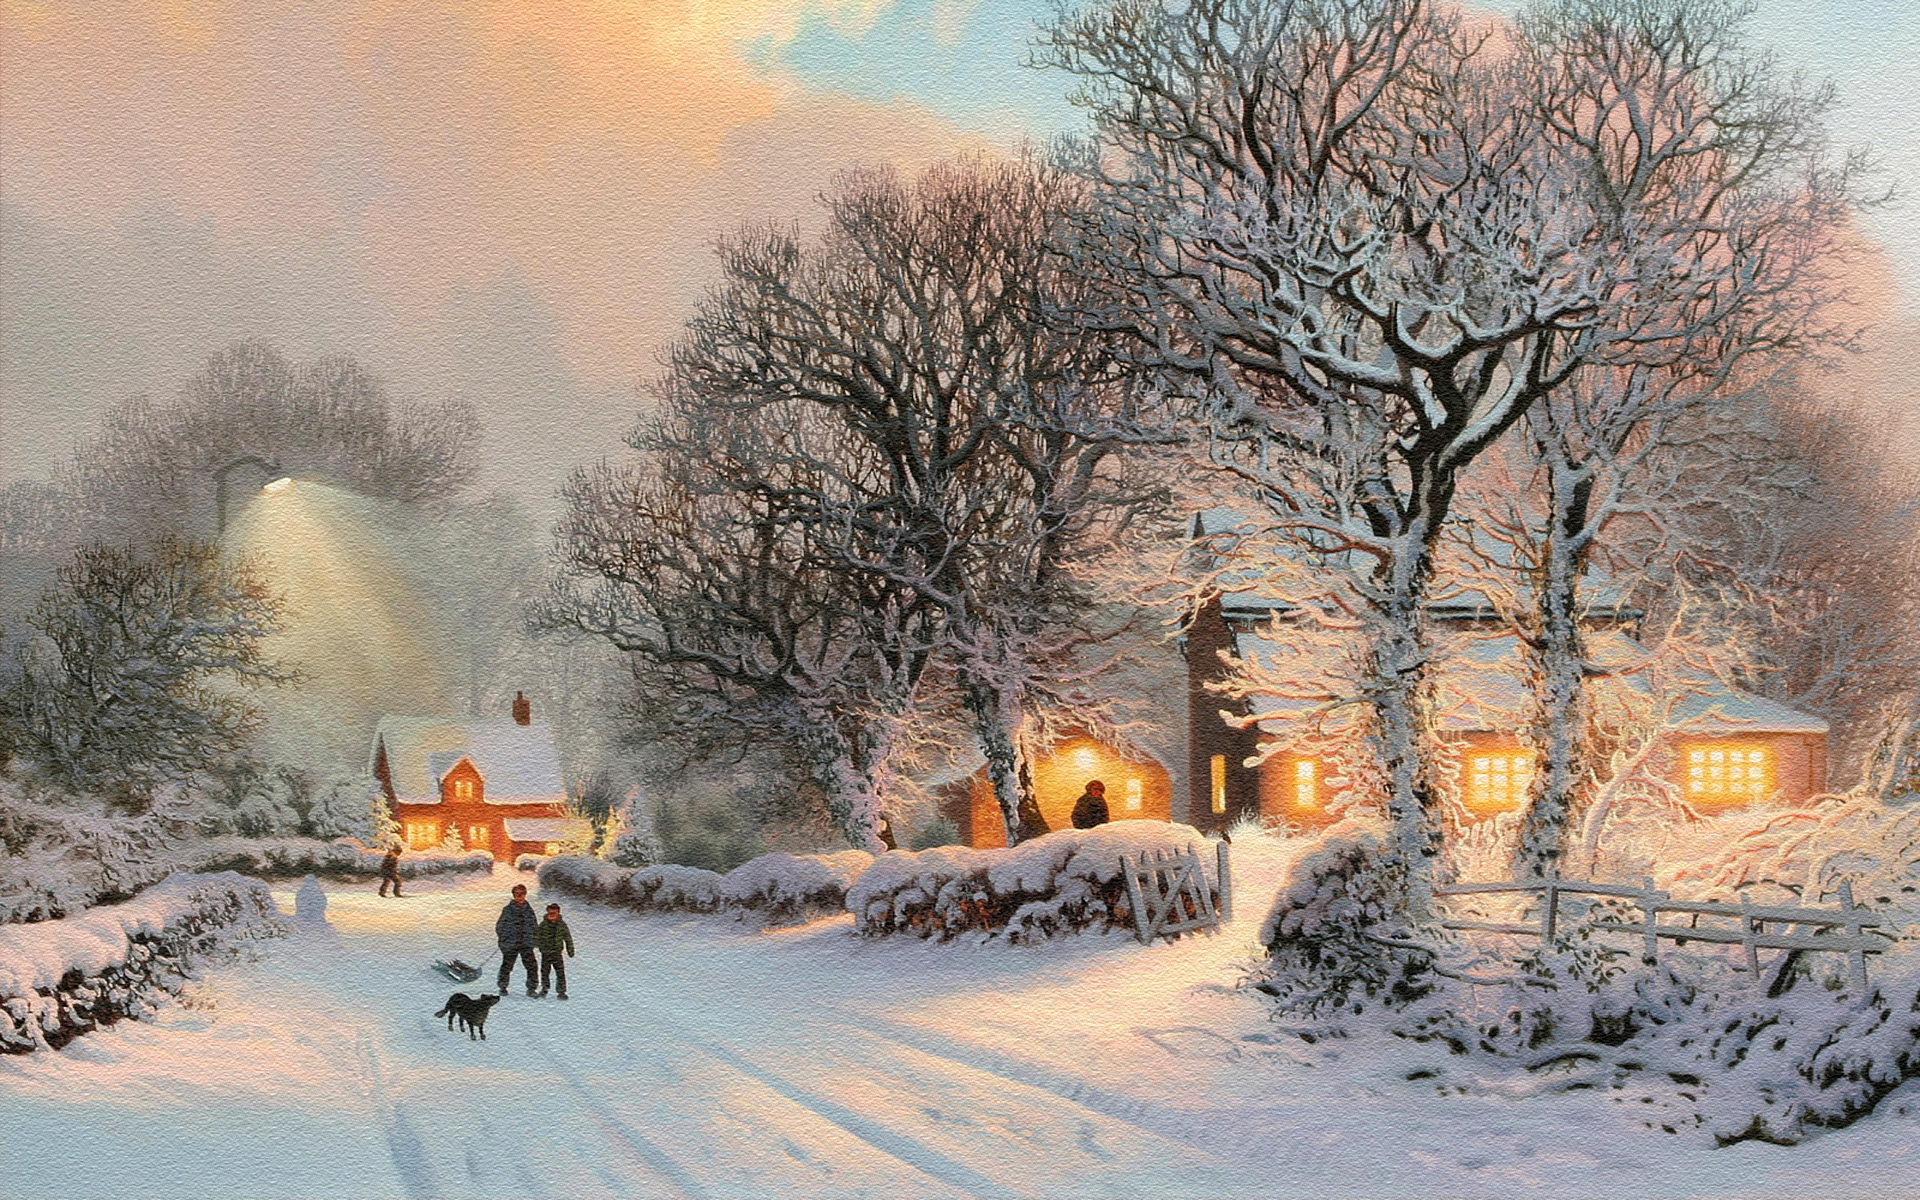 Oil Paint Of Winter Look Amazing Art Download Images